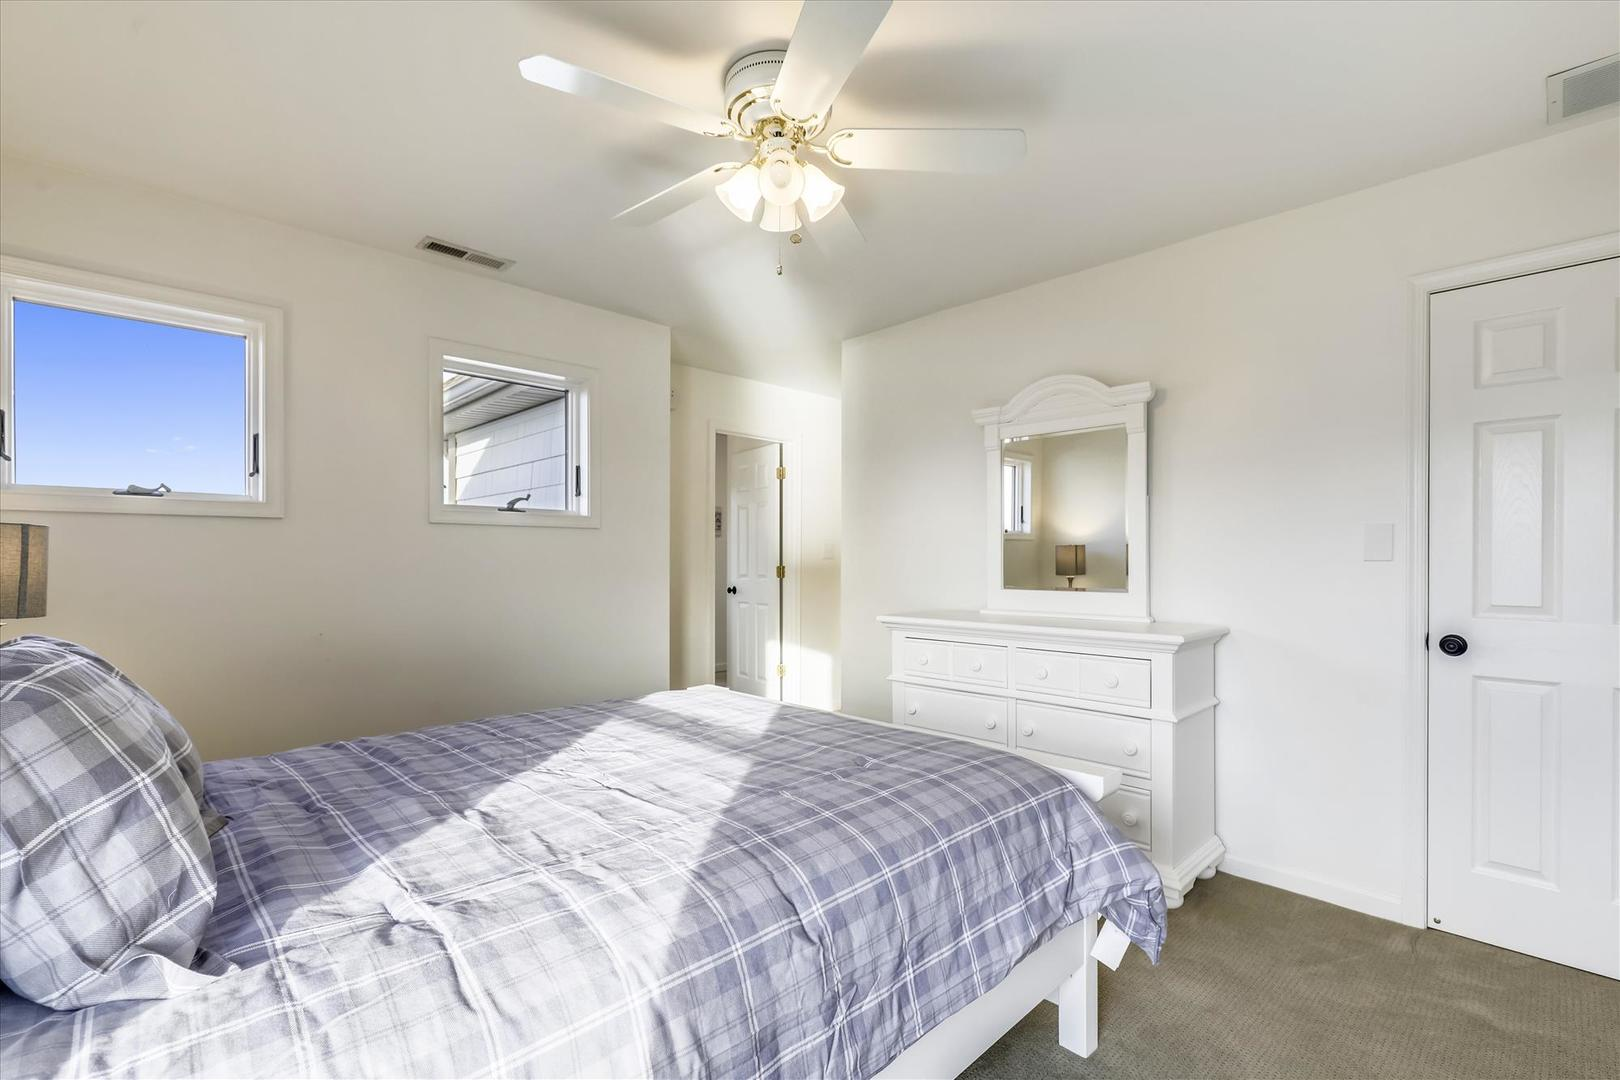 12938 Sunset Ave. - Upper Level Bedroom with Queen